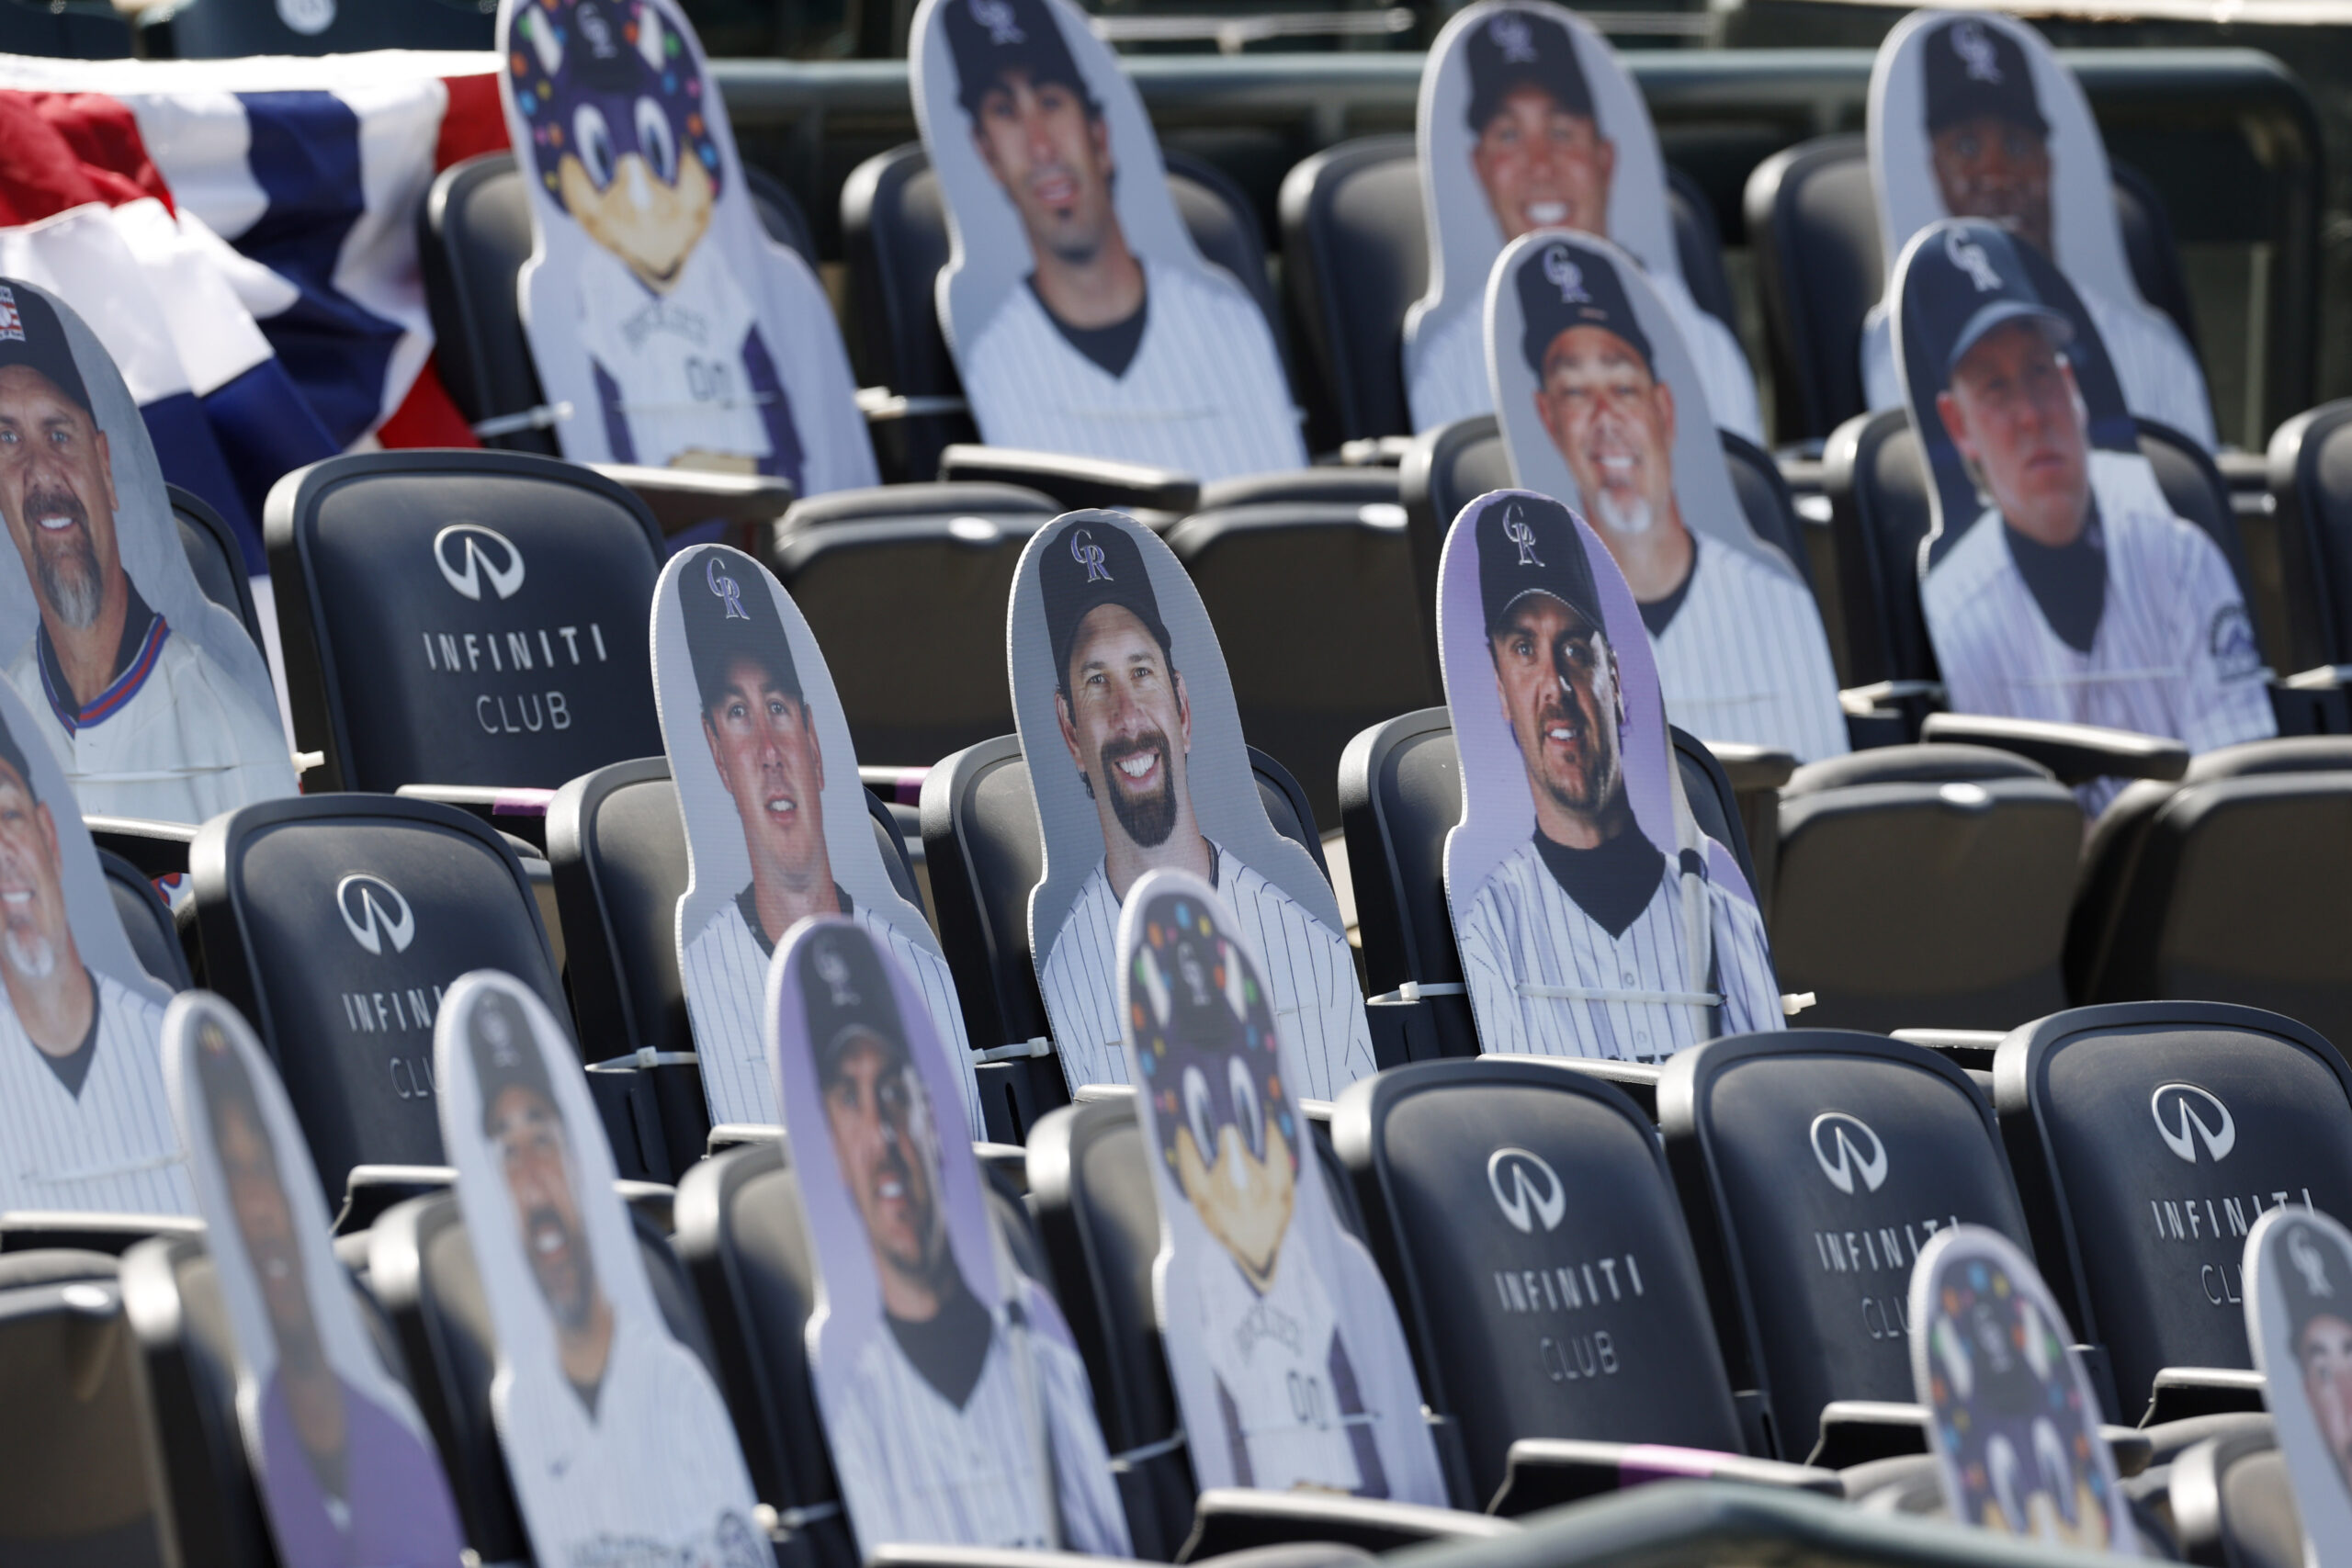 Empty seats Rockies opening day game 2020 cardboard cutouts